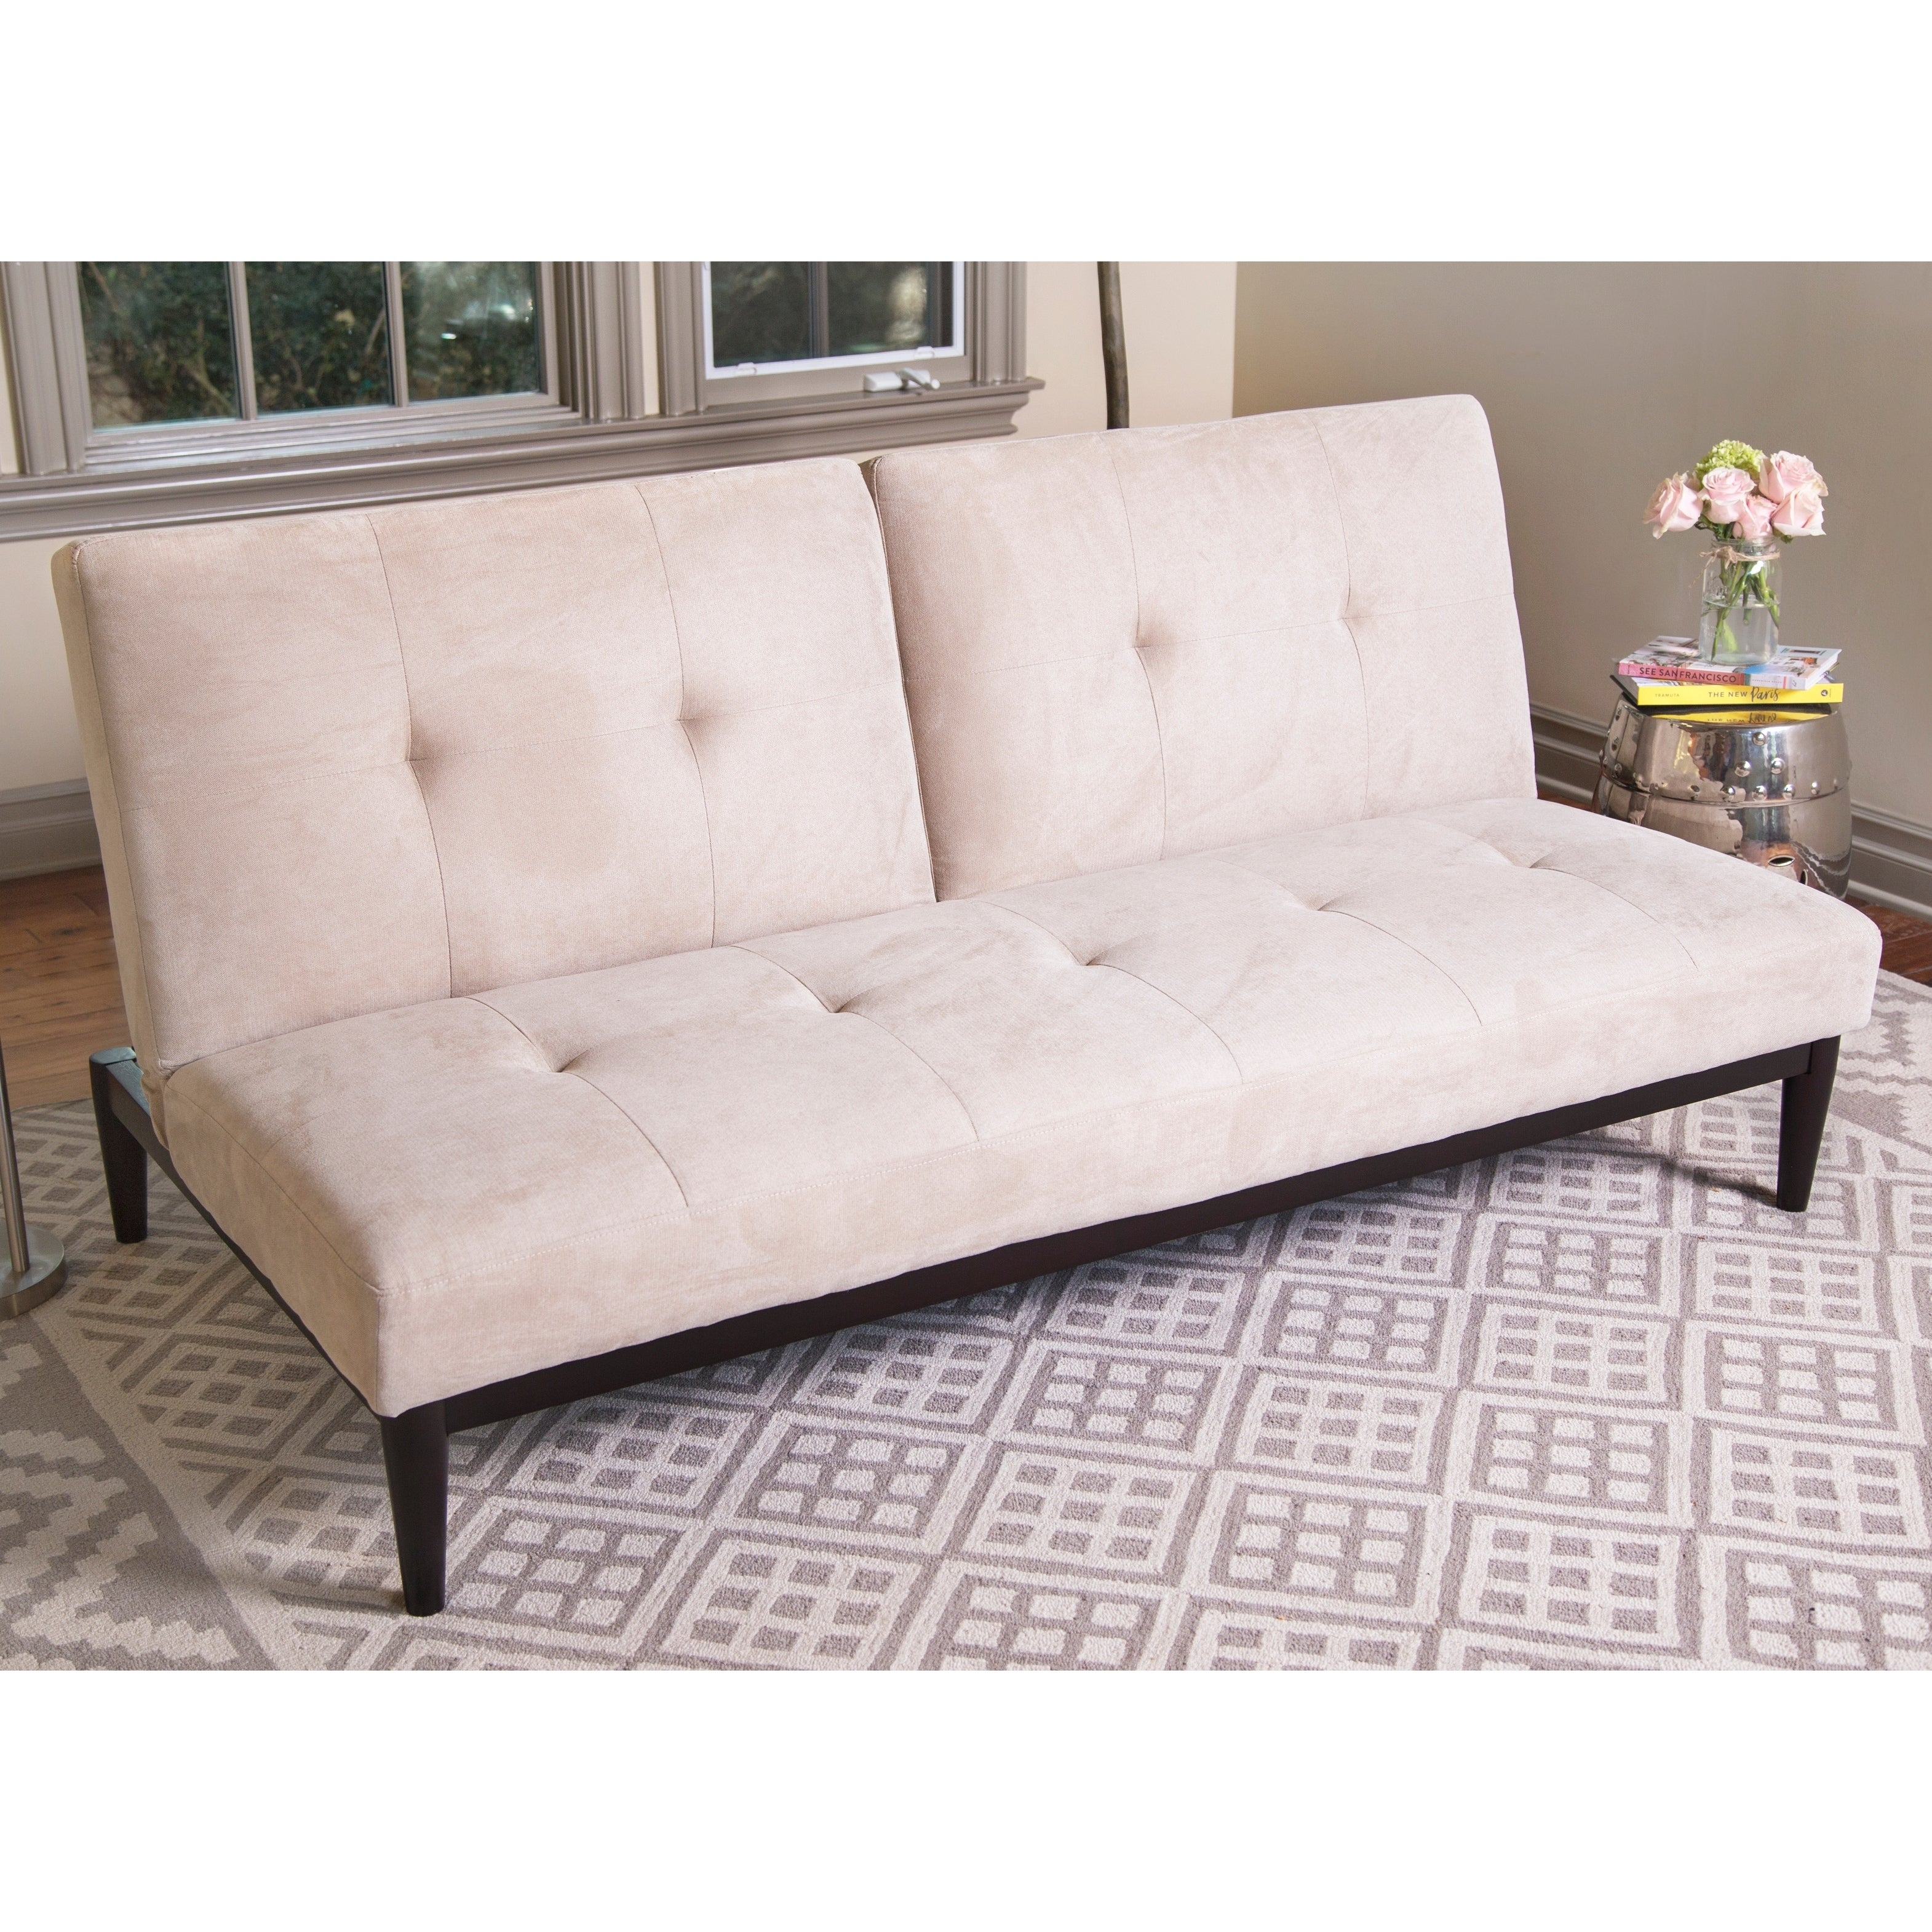 ikea bed base boots diy futons also cheap for japanese beds boston images platform awesome frame futon plans company